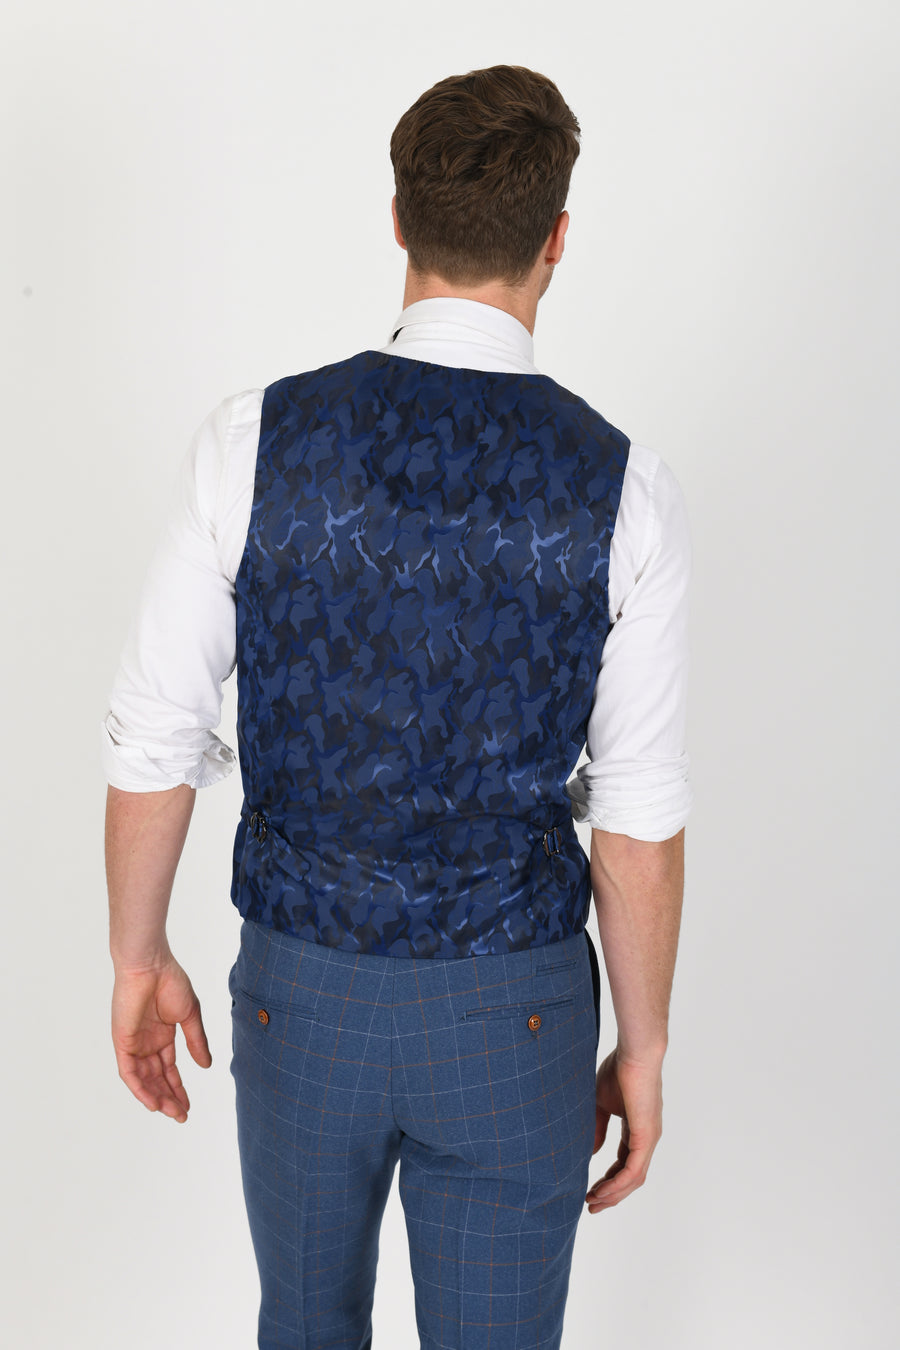 Matthew Wedding Waistcoat - Wedding Suit Direct